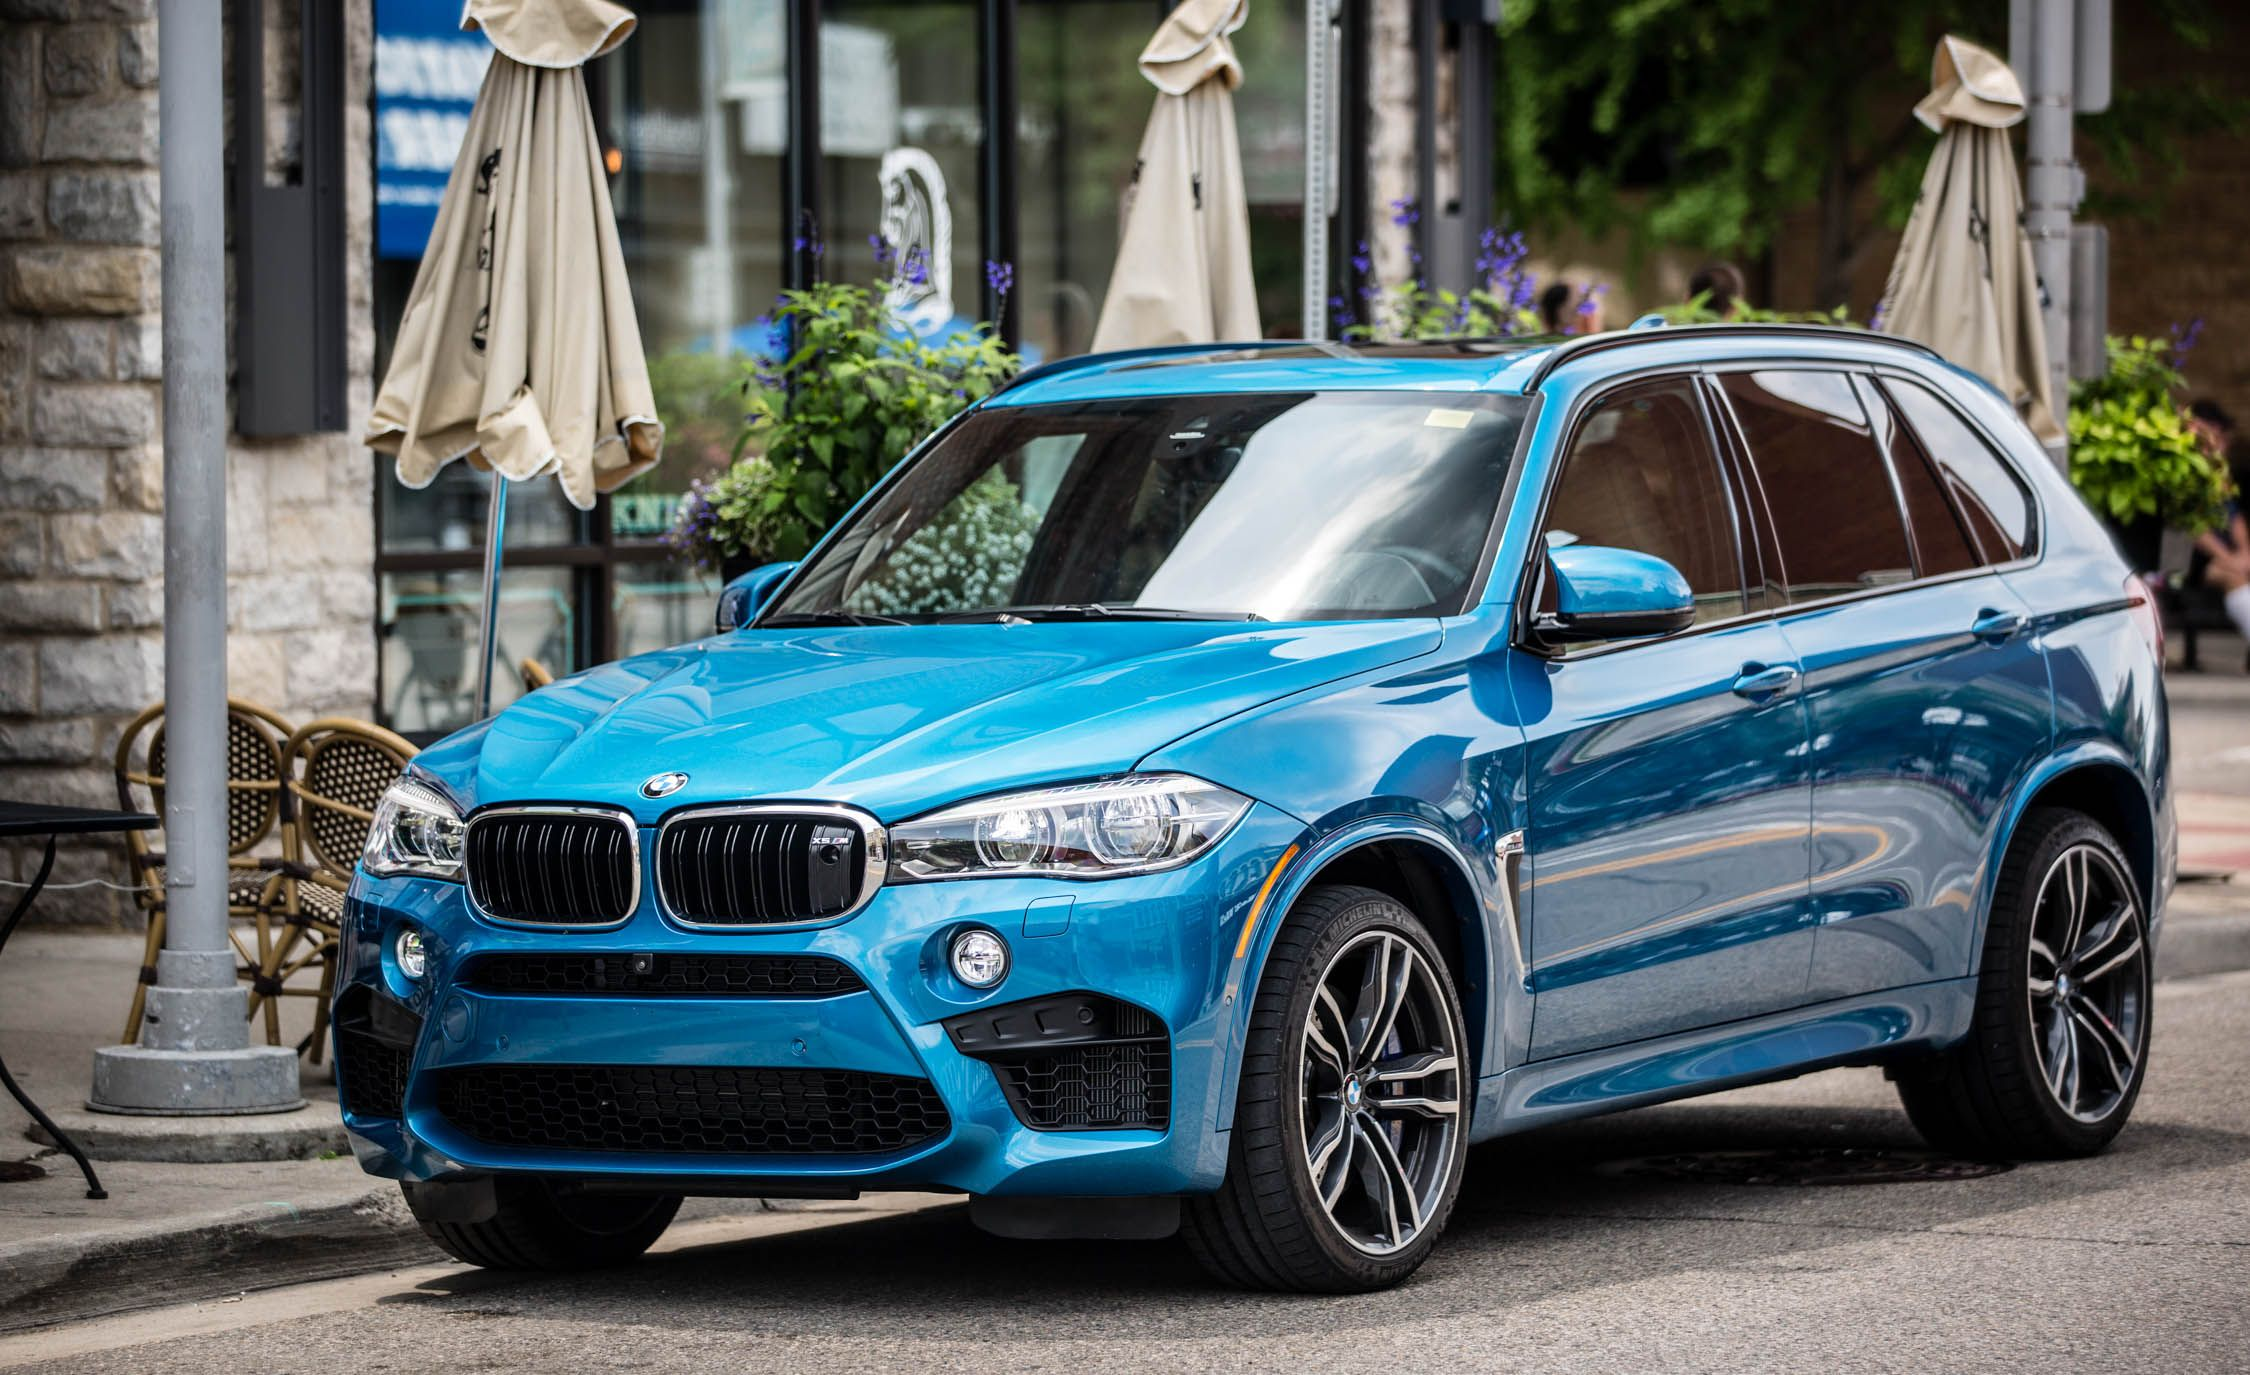 Bmw X5m 2018 >> 2018 Bmw X5 M Engine And Transmission Review Car And Driver